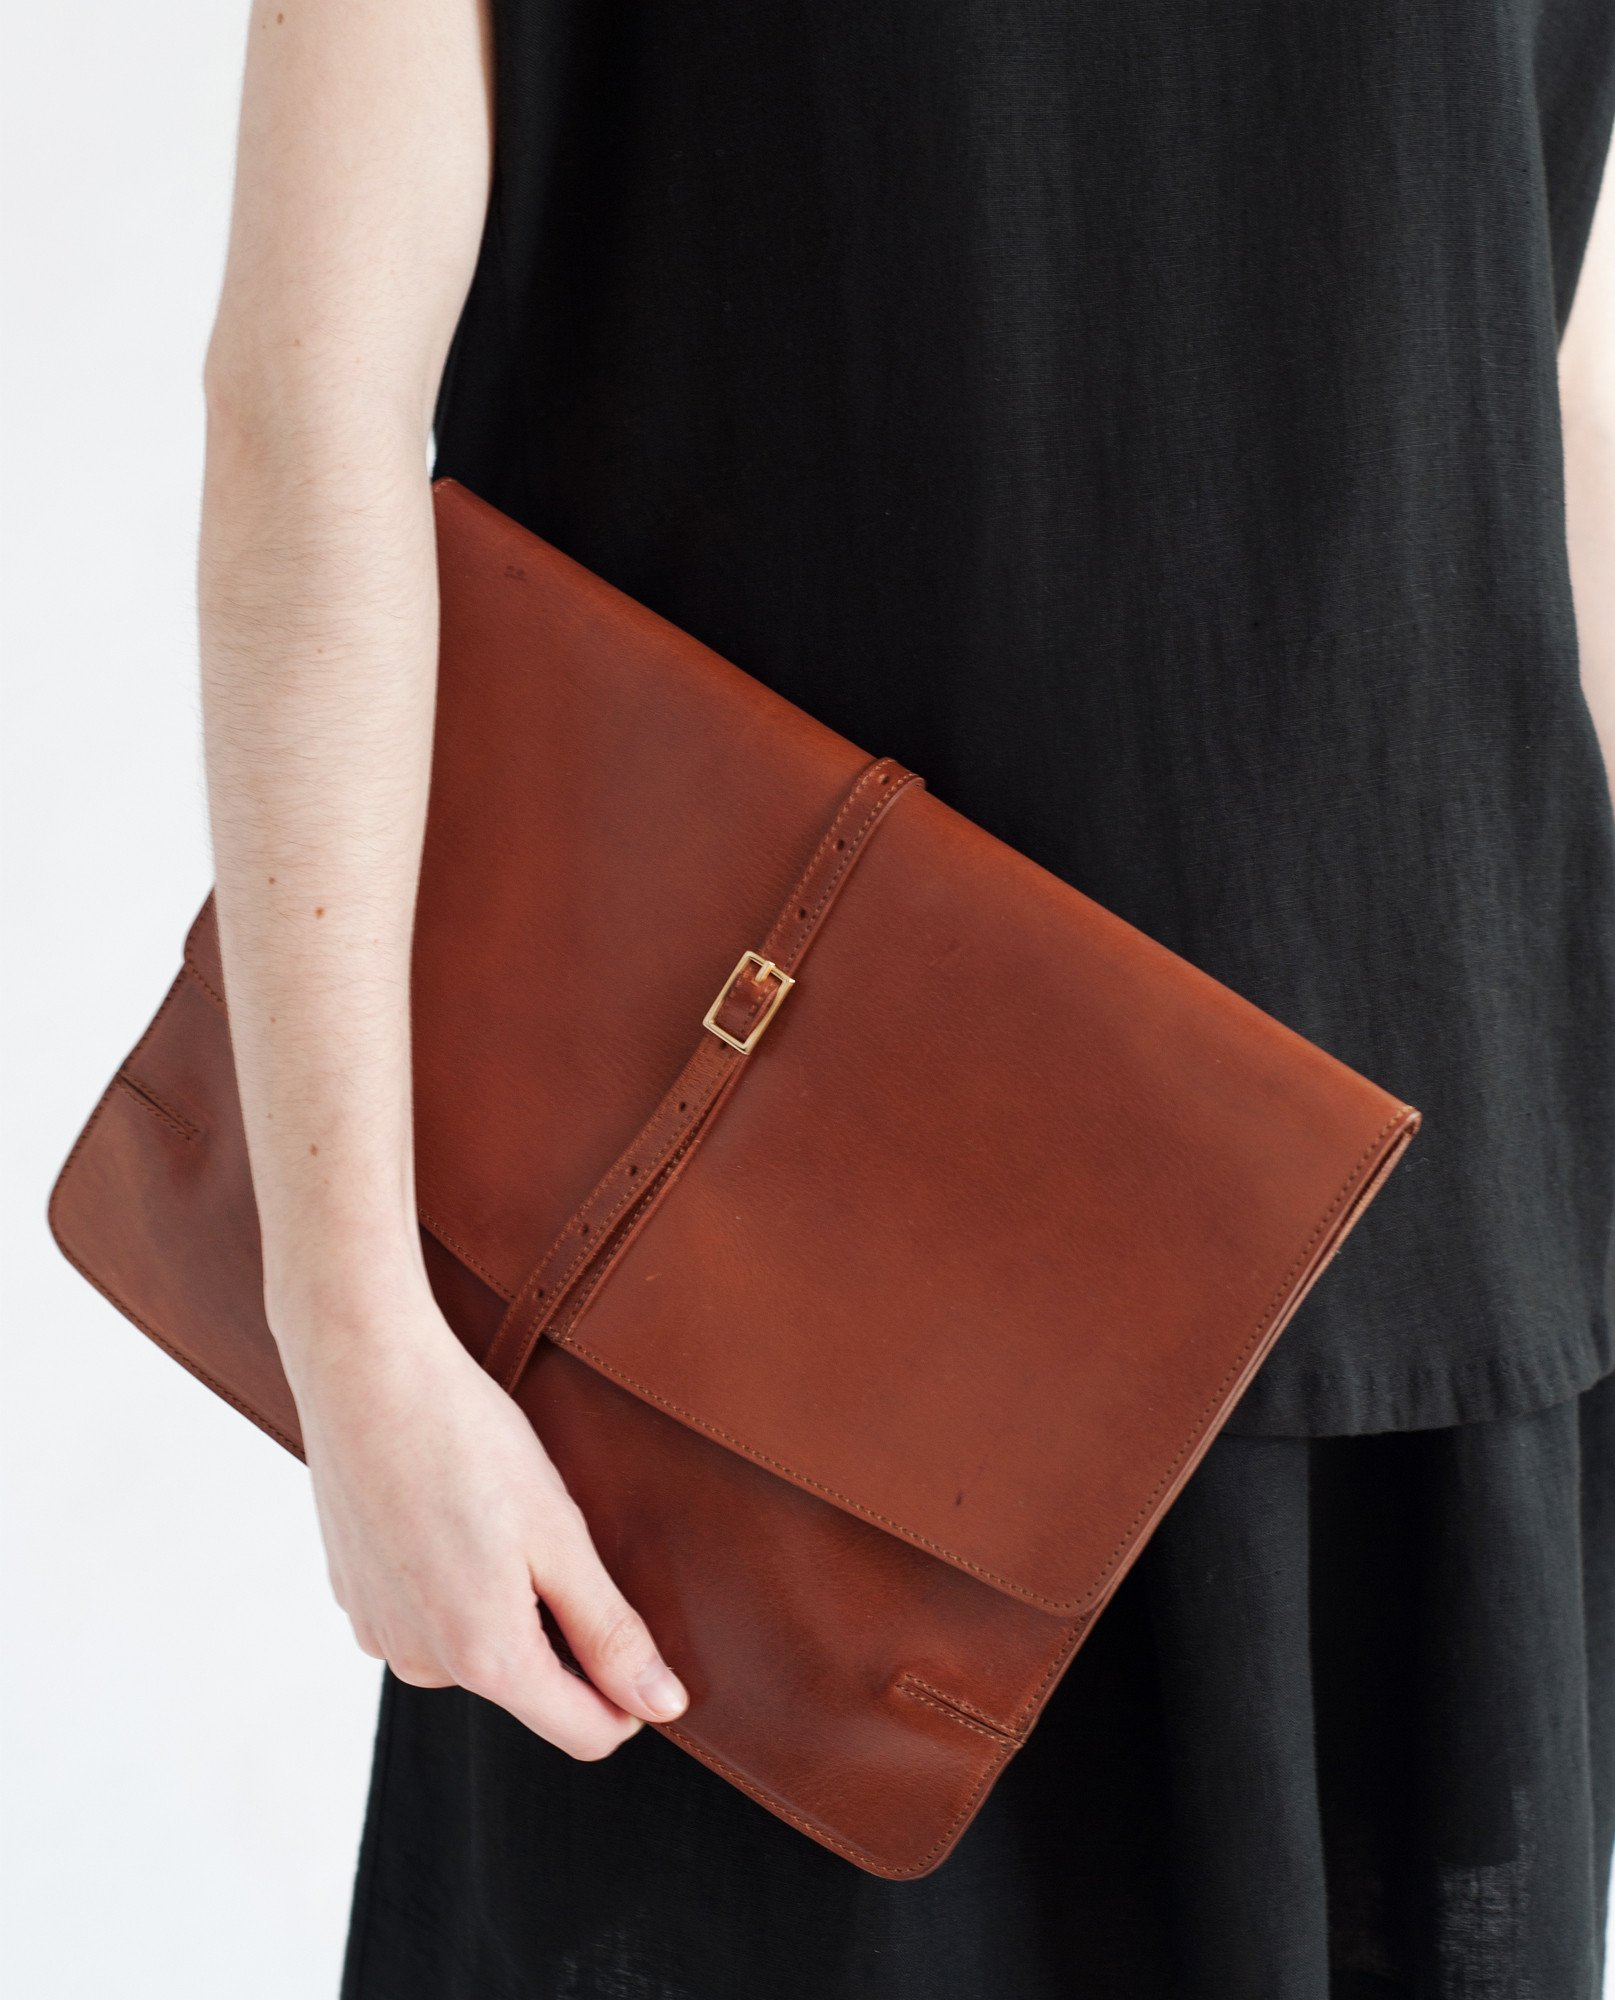 Florence-Beaumont-Organic-Leather-Clutch-Bag-1.jpg